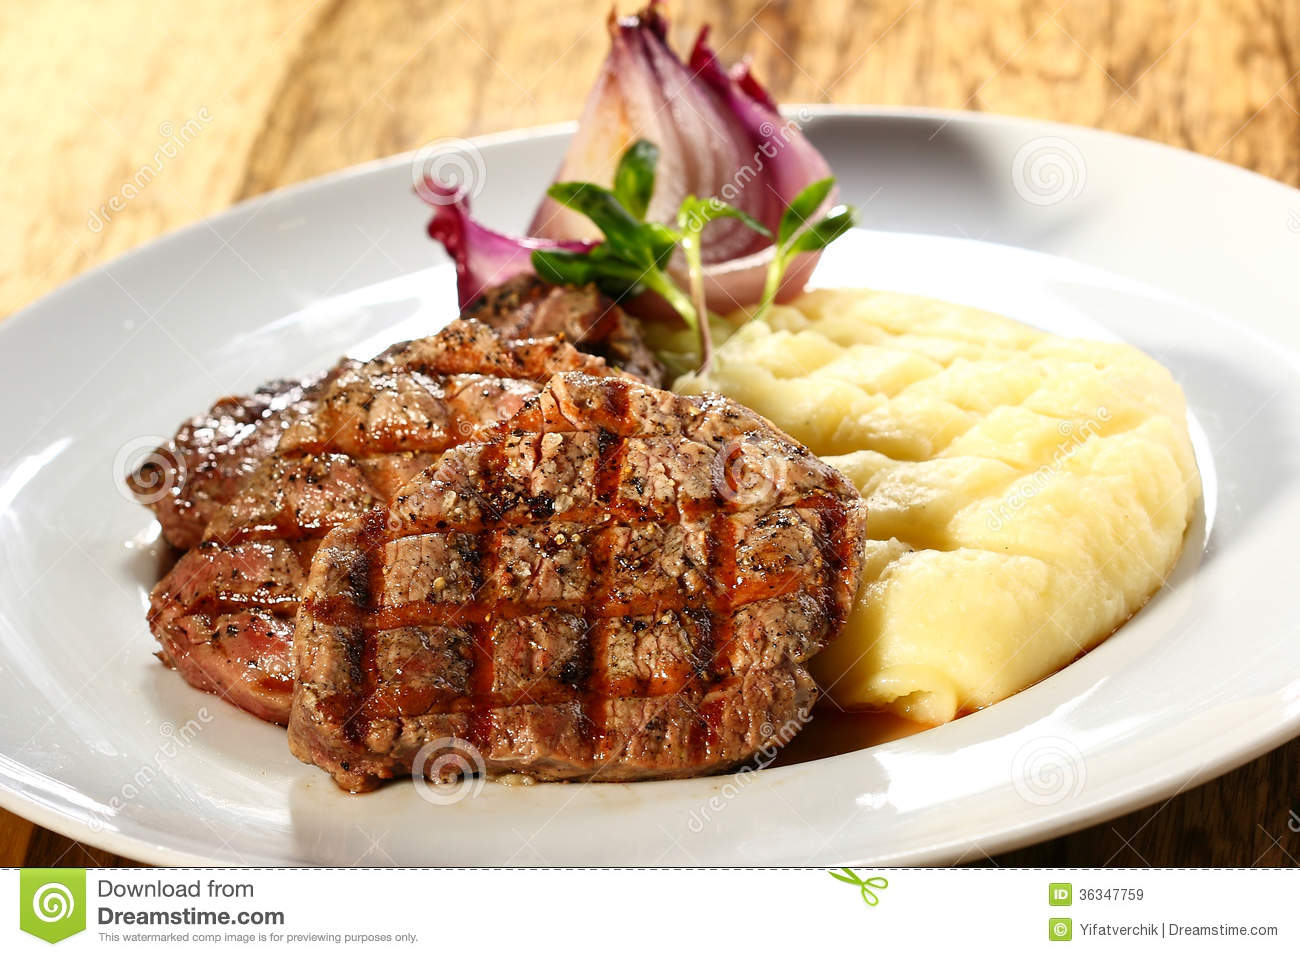 Steak And Mashed Potatoes Royalty Free Stock Images - Image: 36347759